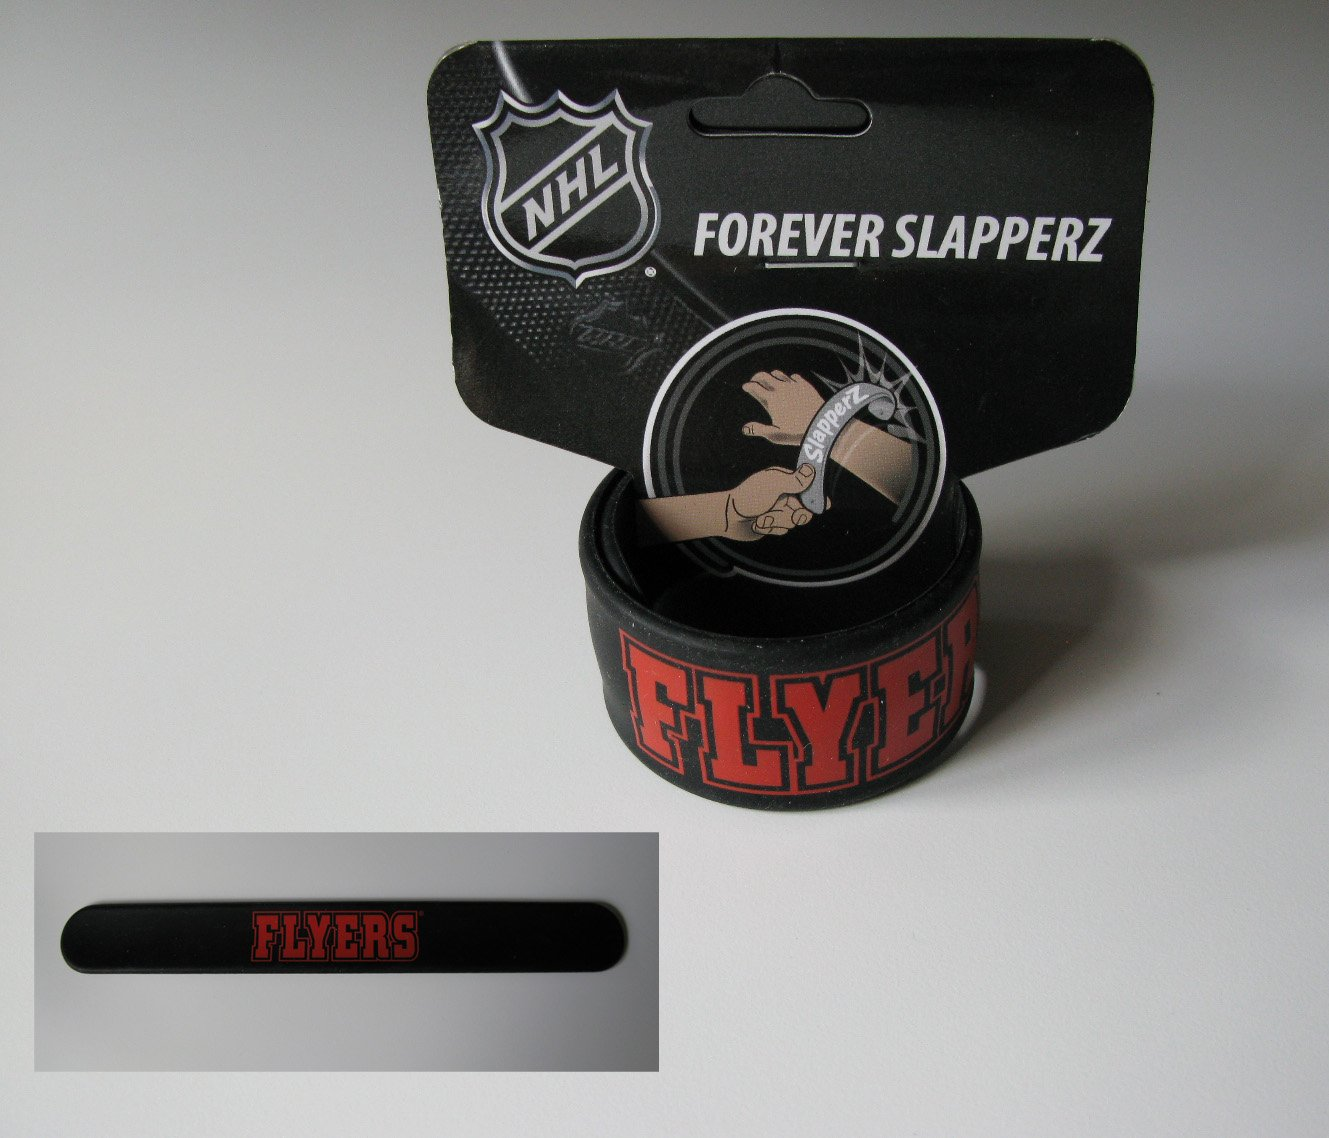 Philadelphia Flyers Rubber Puck Slapperz Band Bracelet